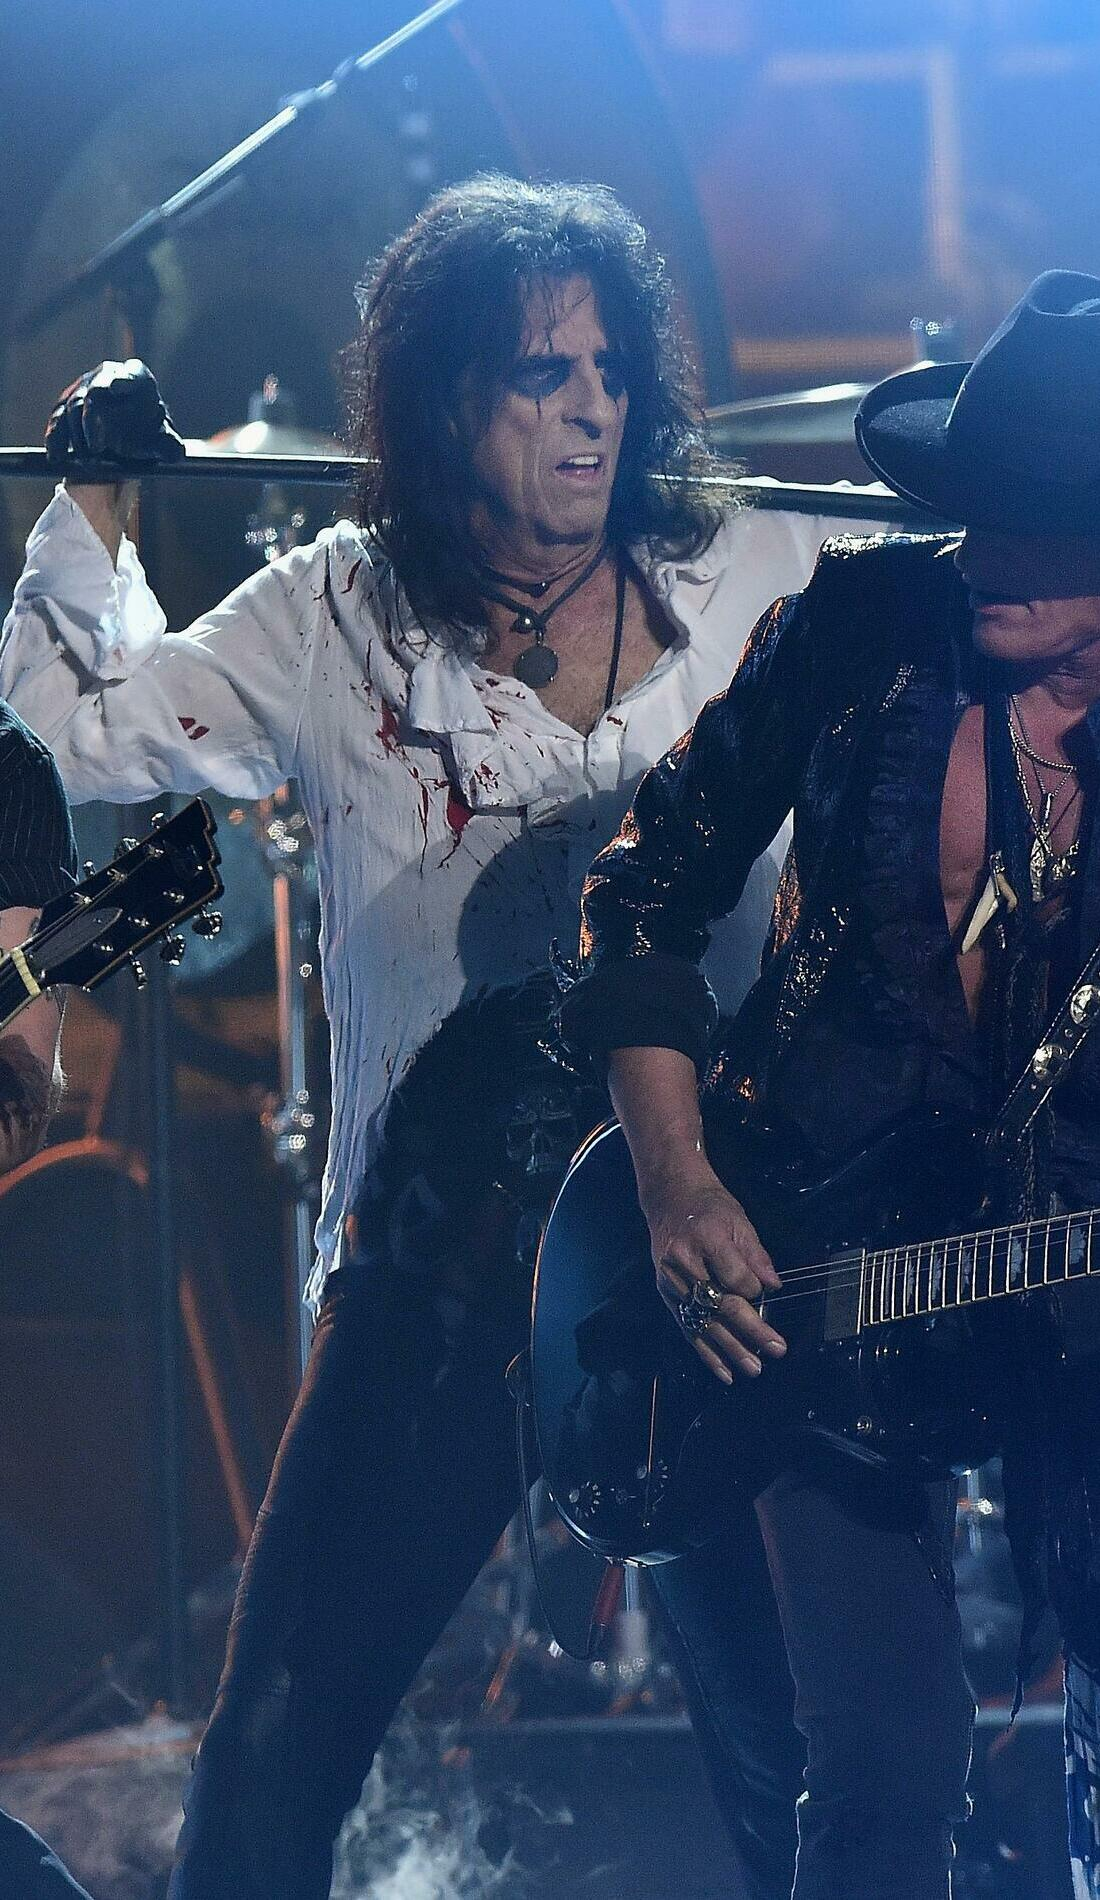 A Hollywood Vampires live event